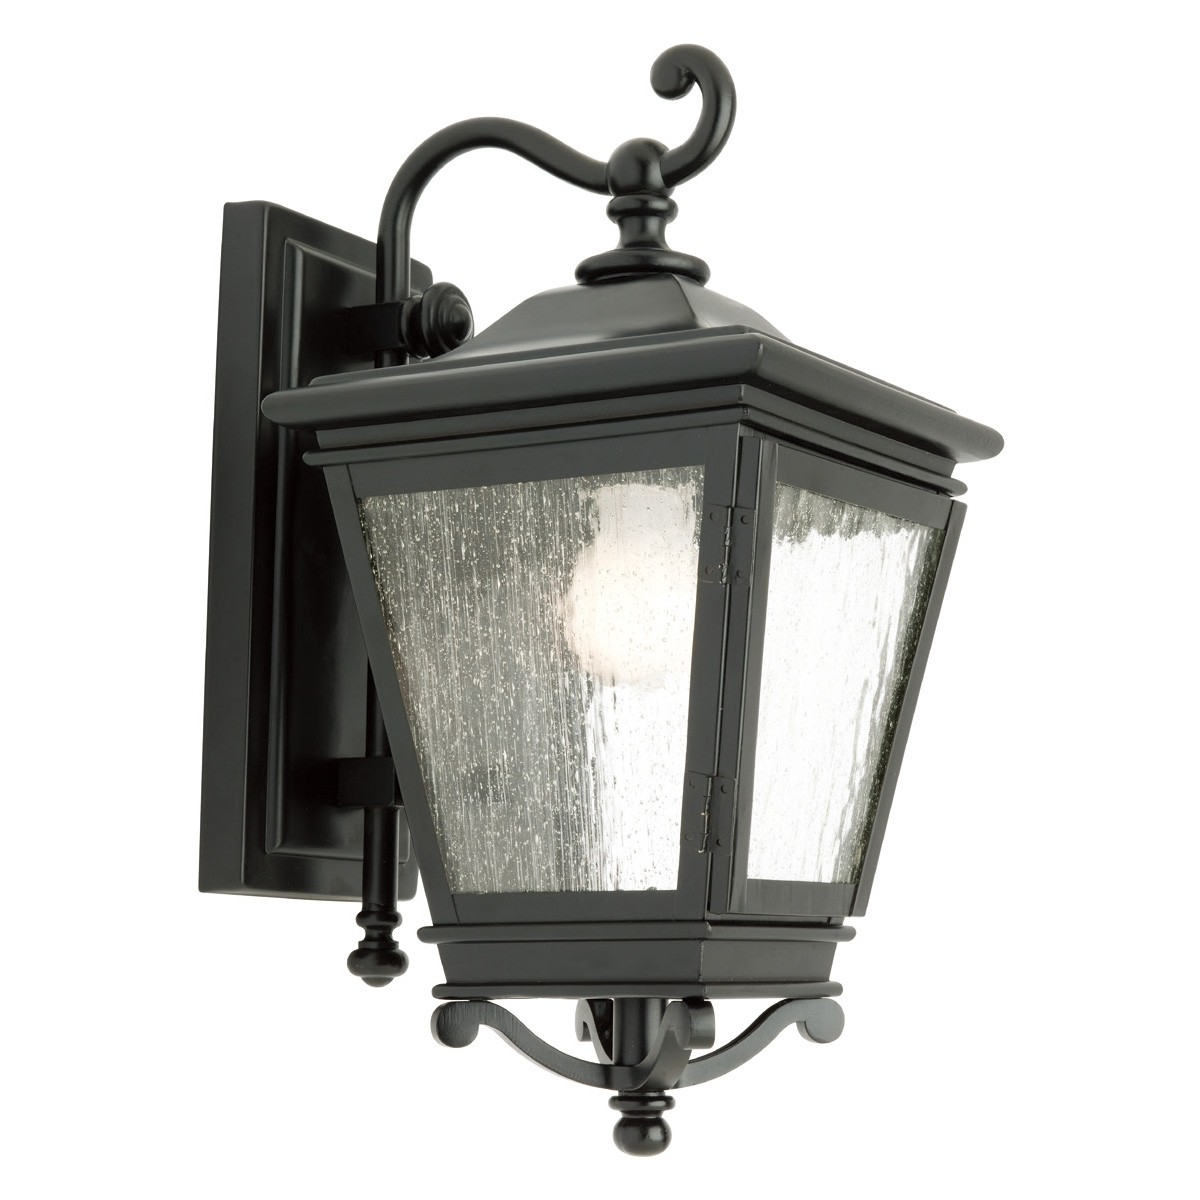 Nottingham IP43 Outdoor Wall Light - Black